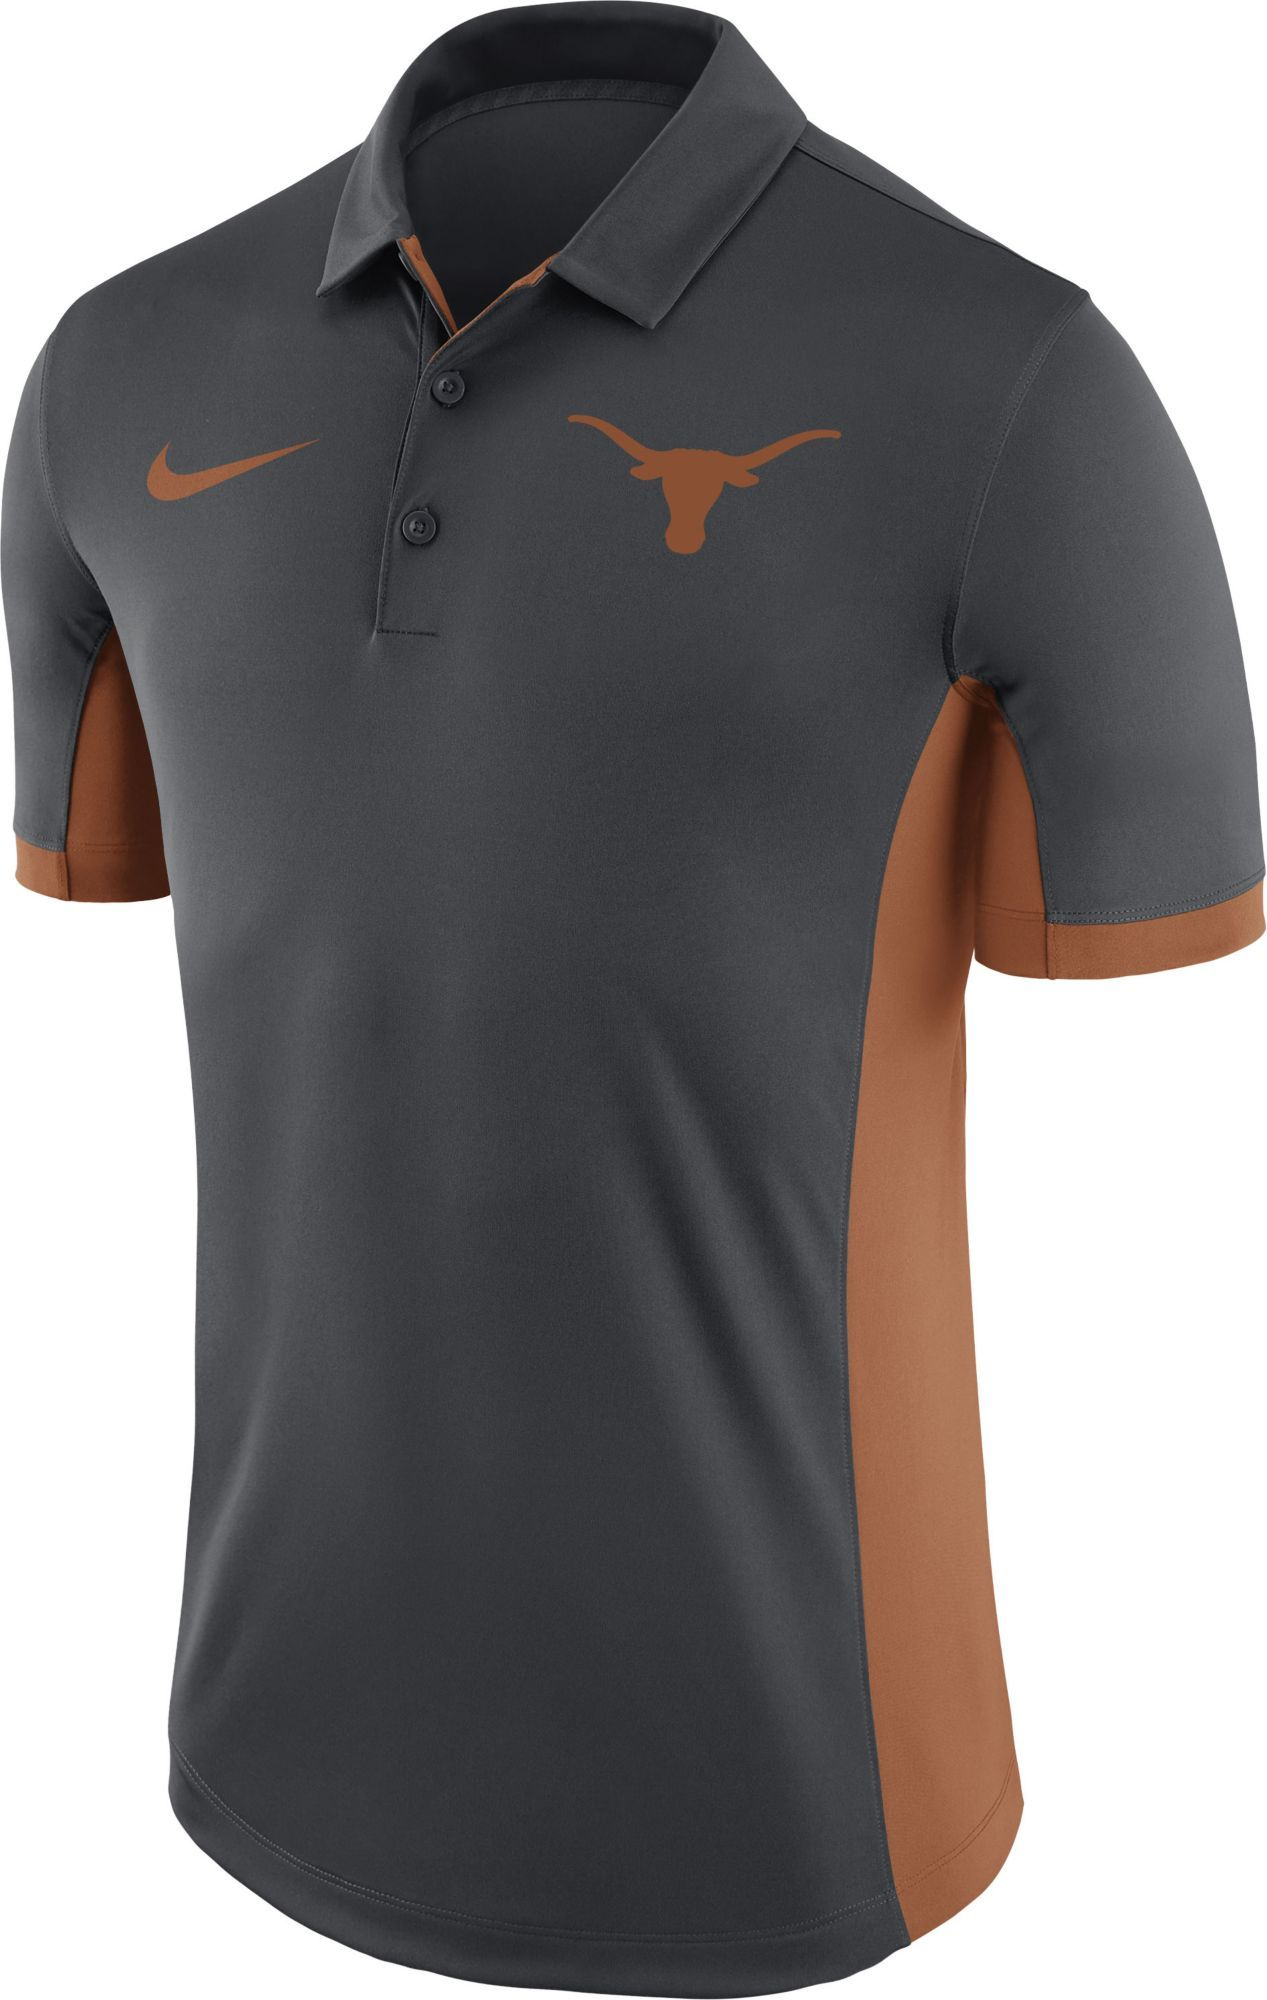 fa5c5ba4 Nike Men's Texas Longhorns Anthracite Evergreen Performance Polo, Size:  Large, Team Arkansas Razorbacks